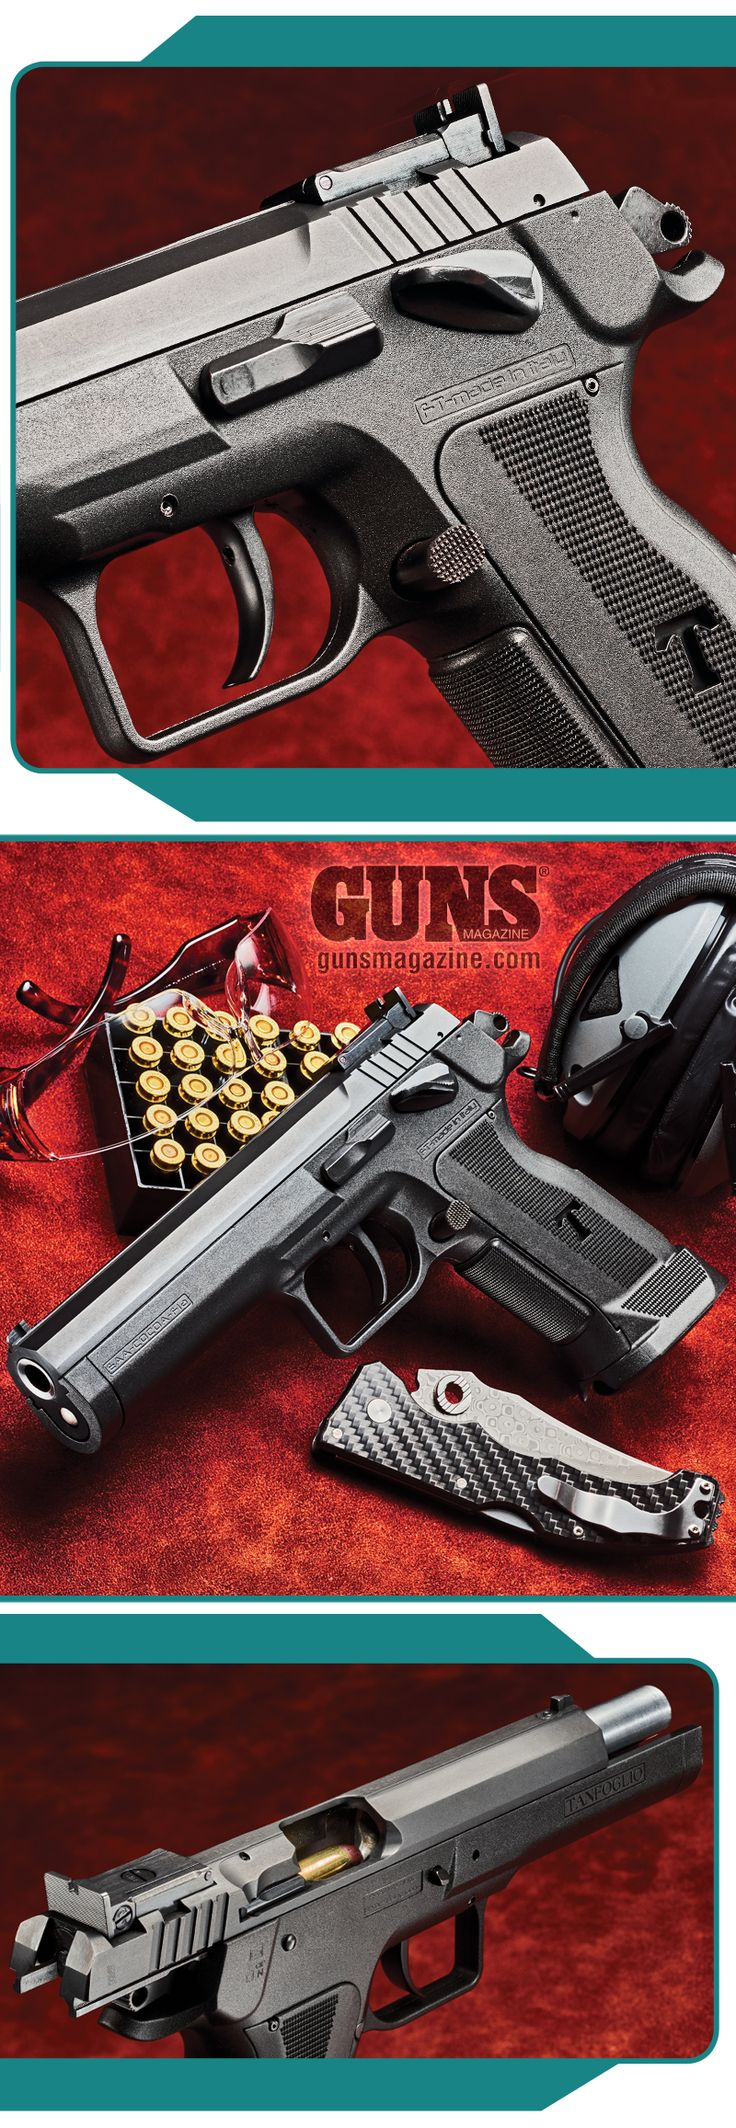 No Limits   By John Taffin   EAA's 10mm Witness P Match Joins The Pantheon Of Perfect Packin' Pistols   Tanfoglio's new Polymer Witness P Match 10mm now joins the steel-framed one offered by EAA (European American Armory) with all the extras shooters wanted.   © GUNS Magazine 2018